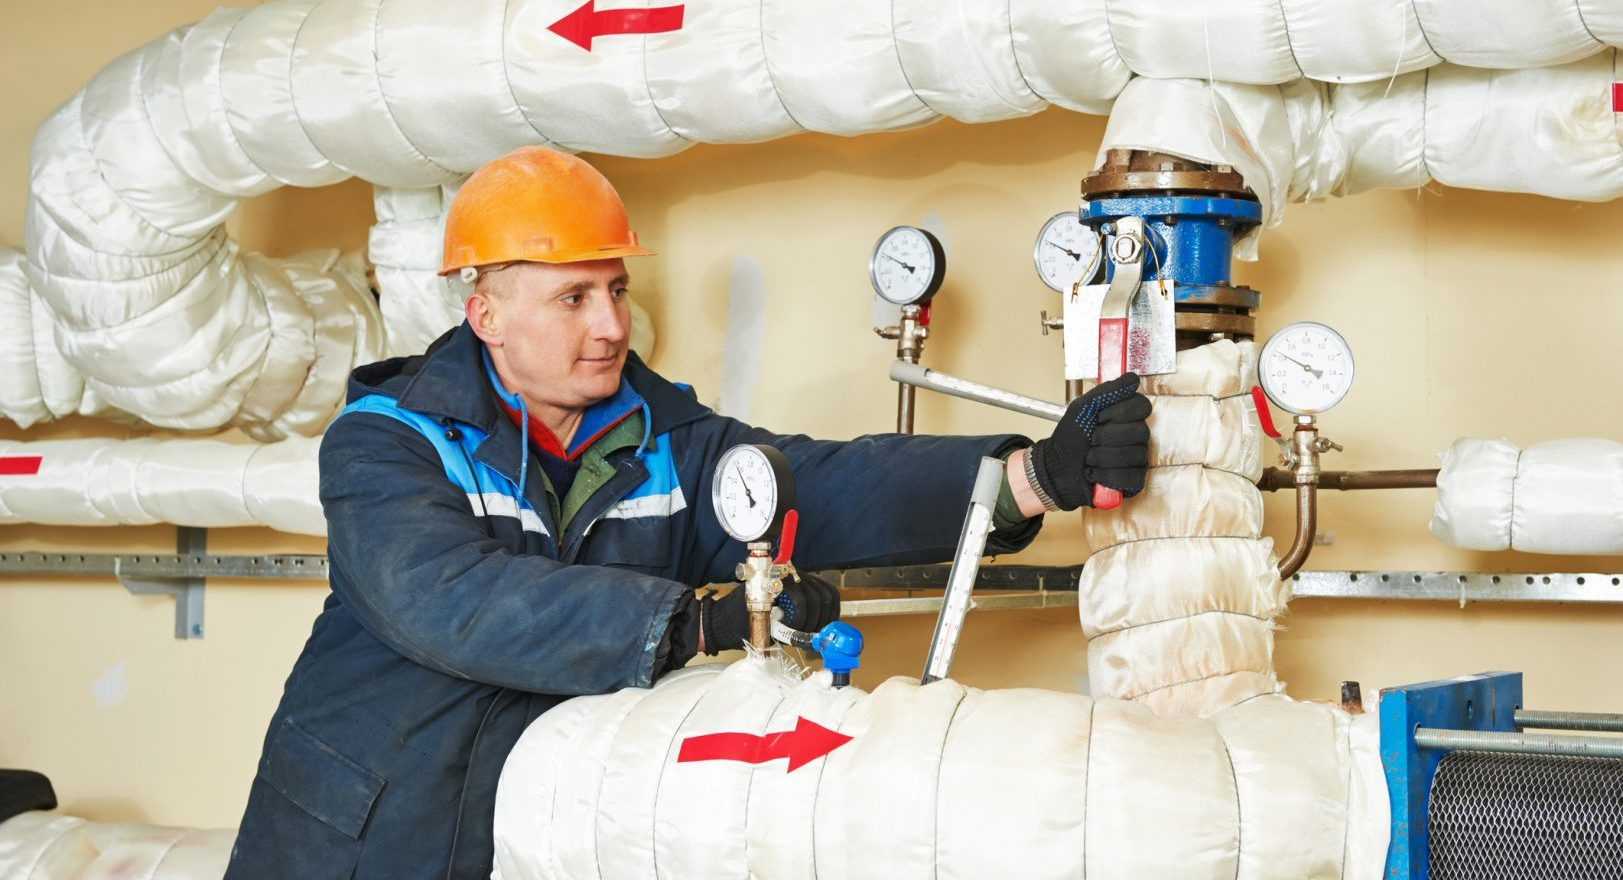 heating-engineer-repairman-boiler-room-fire-engineering-system-system-open-valve-equipment-house-51399244